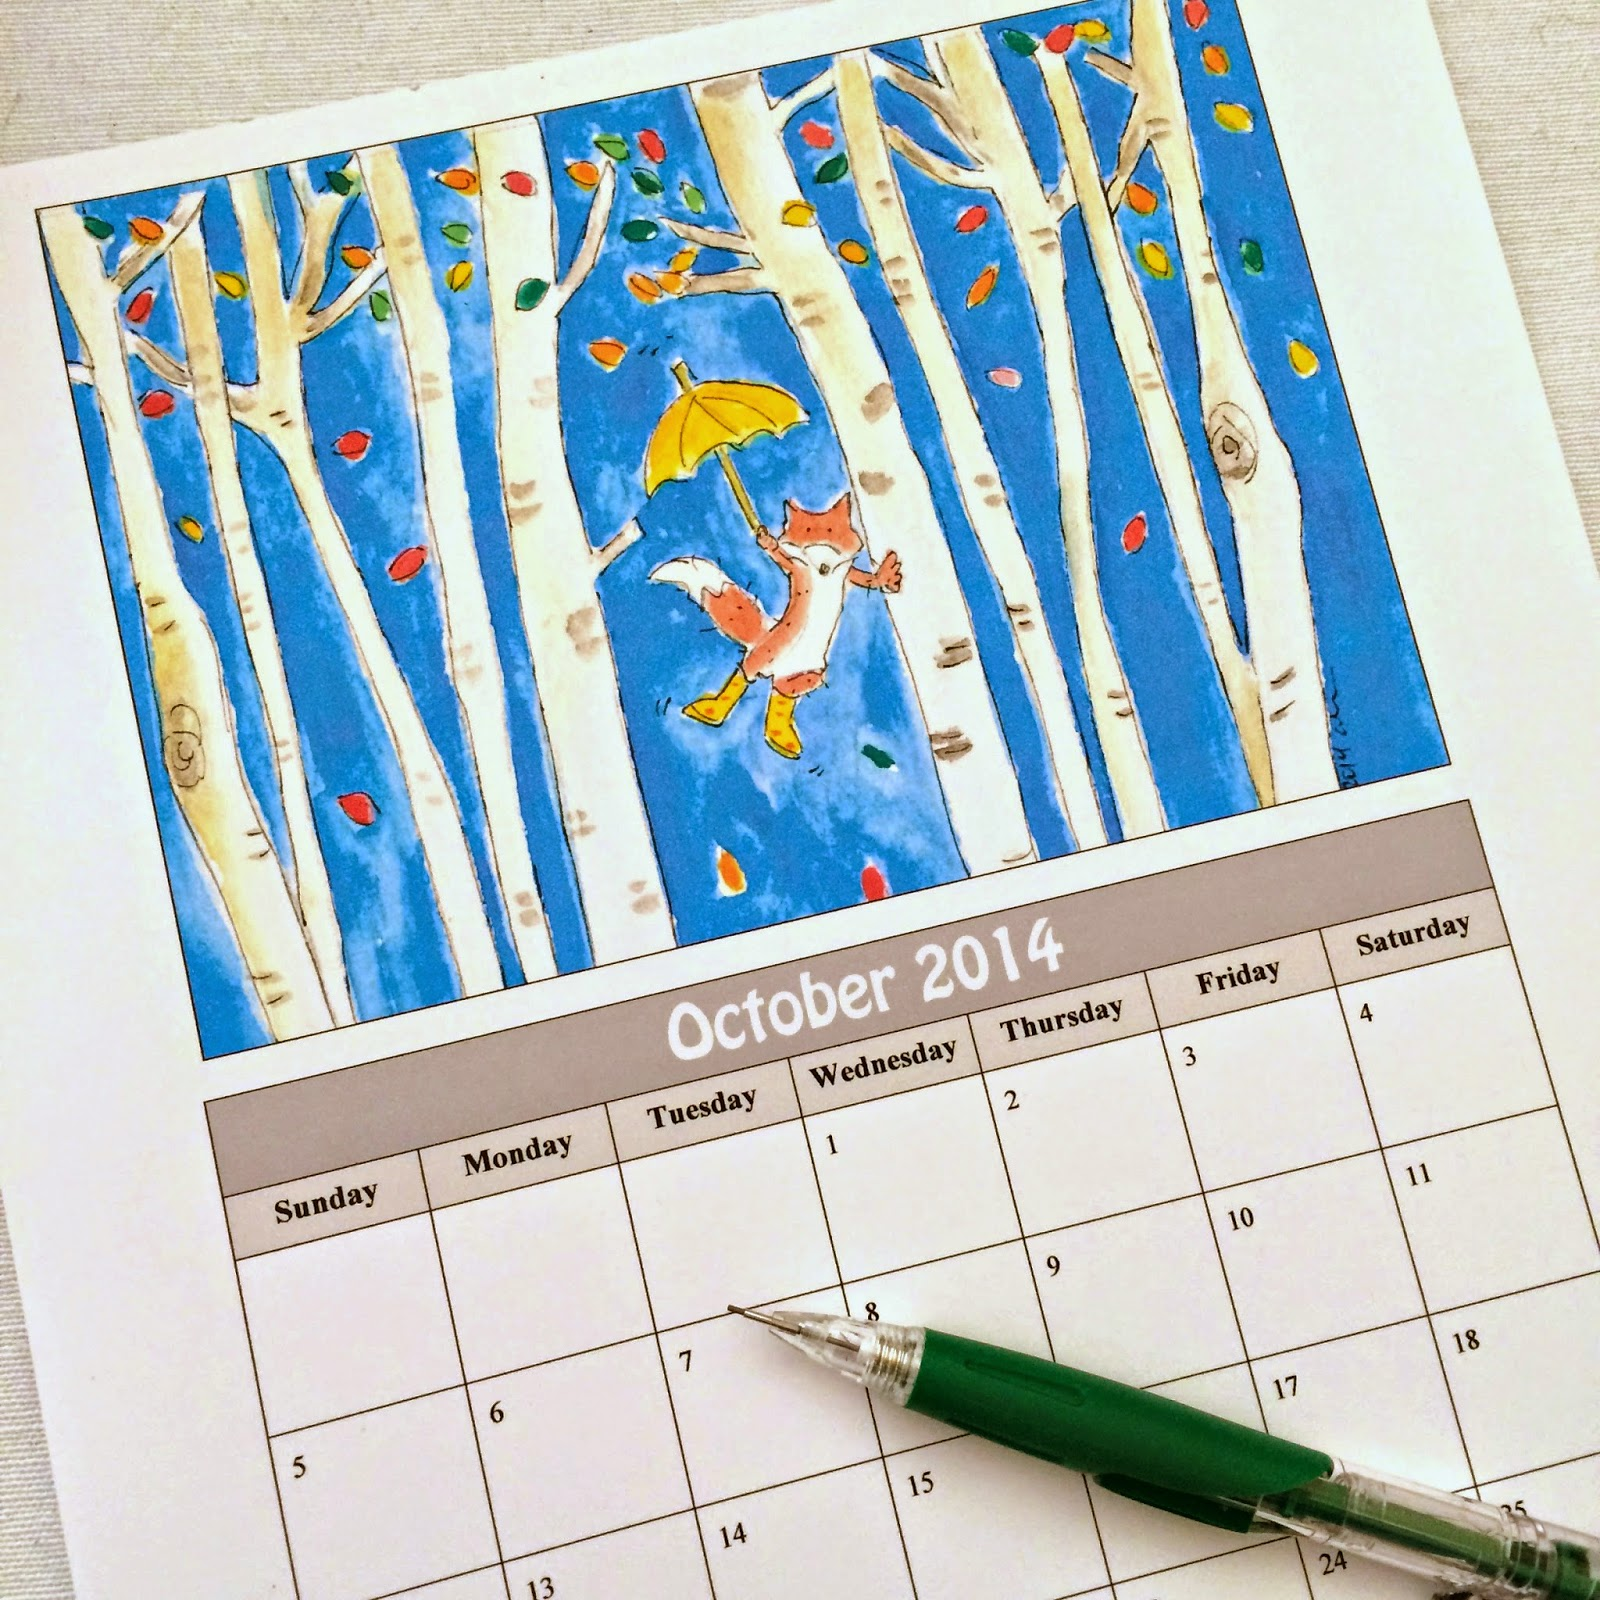 https://www.etsy.com/listing/205538586/calendar-mr-fox?ref=shop_home_active_2